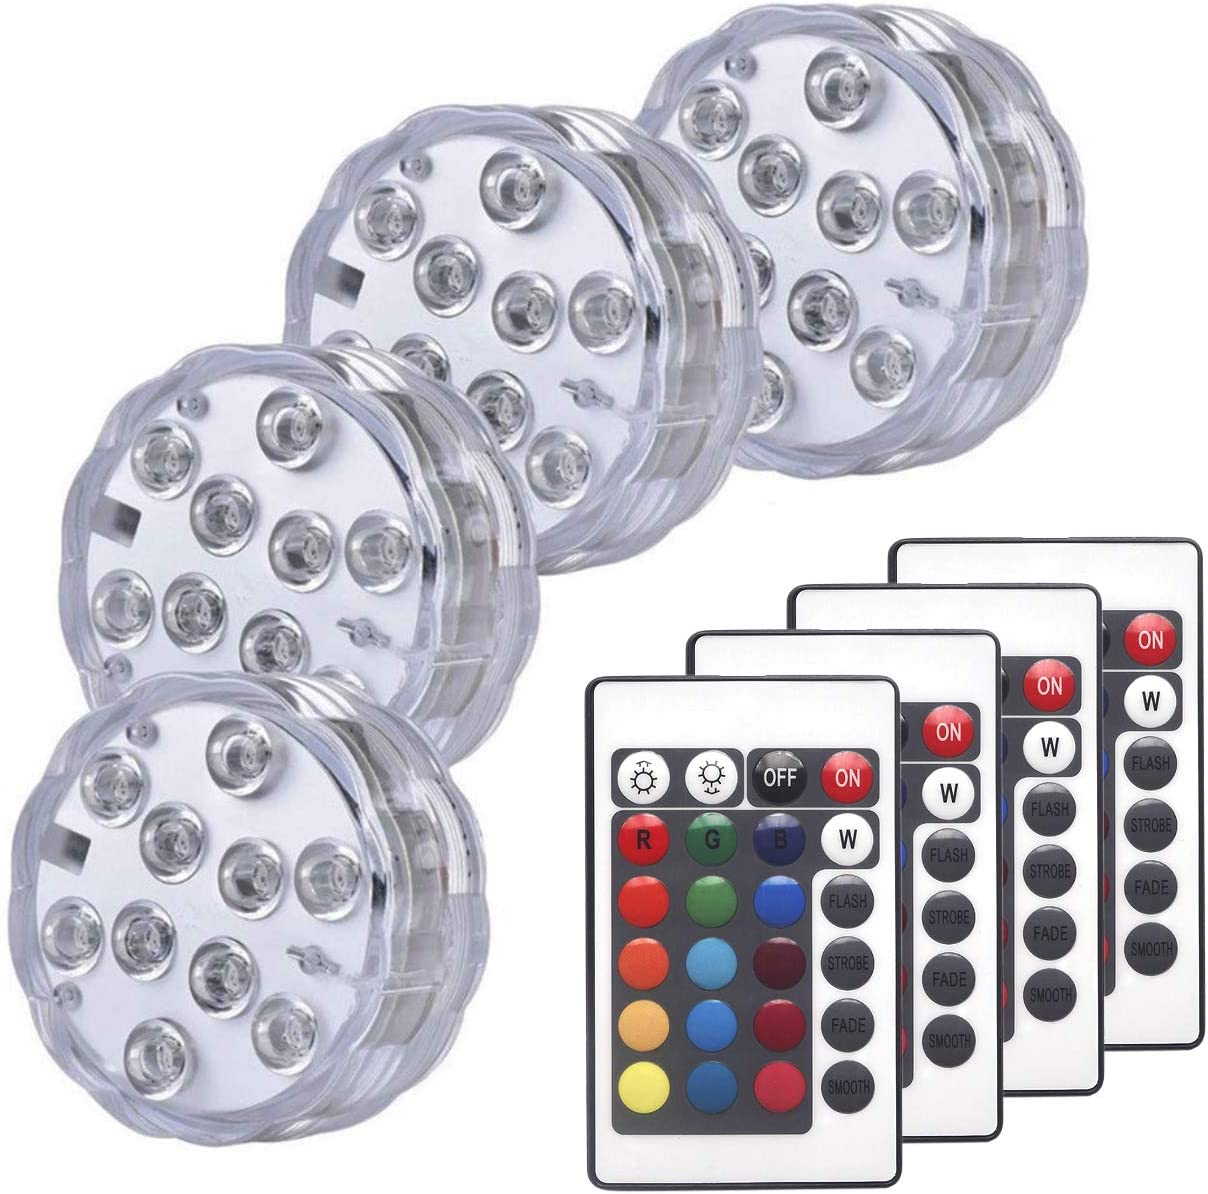 Sunyel Submersible LED Lights, 16 Colors 4 Modes Battery Powered RGB Floral Lights with 24-Key Remote (4-Pack)